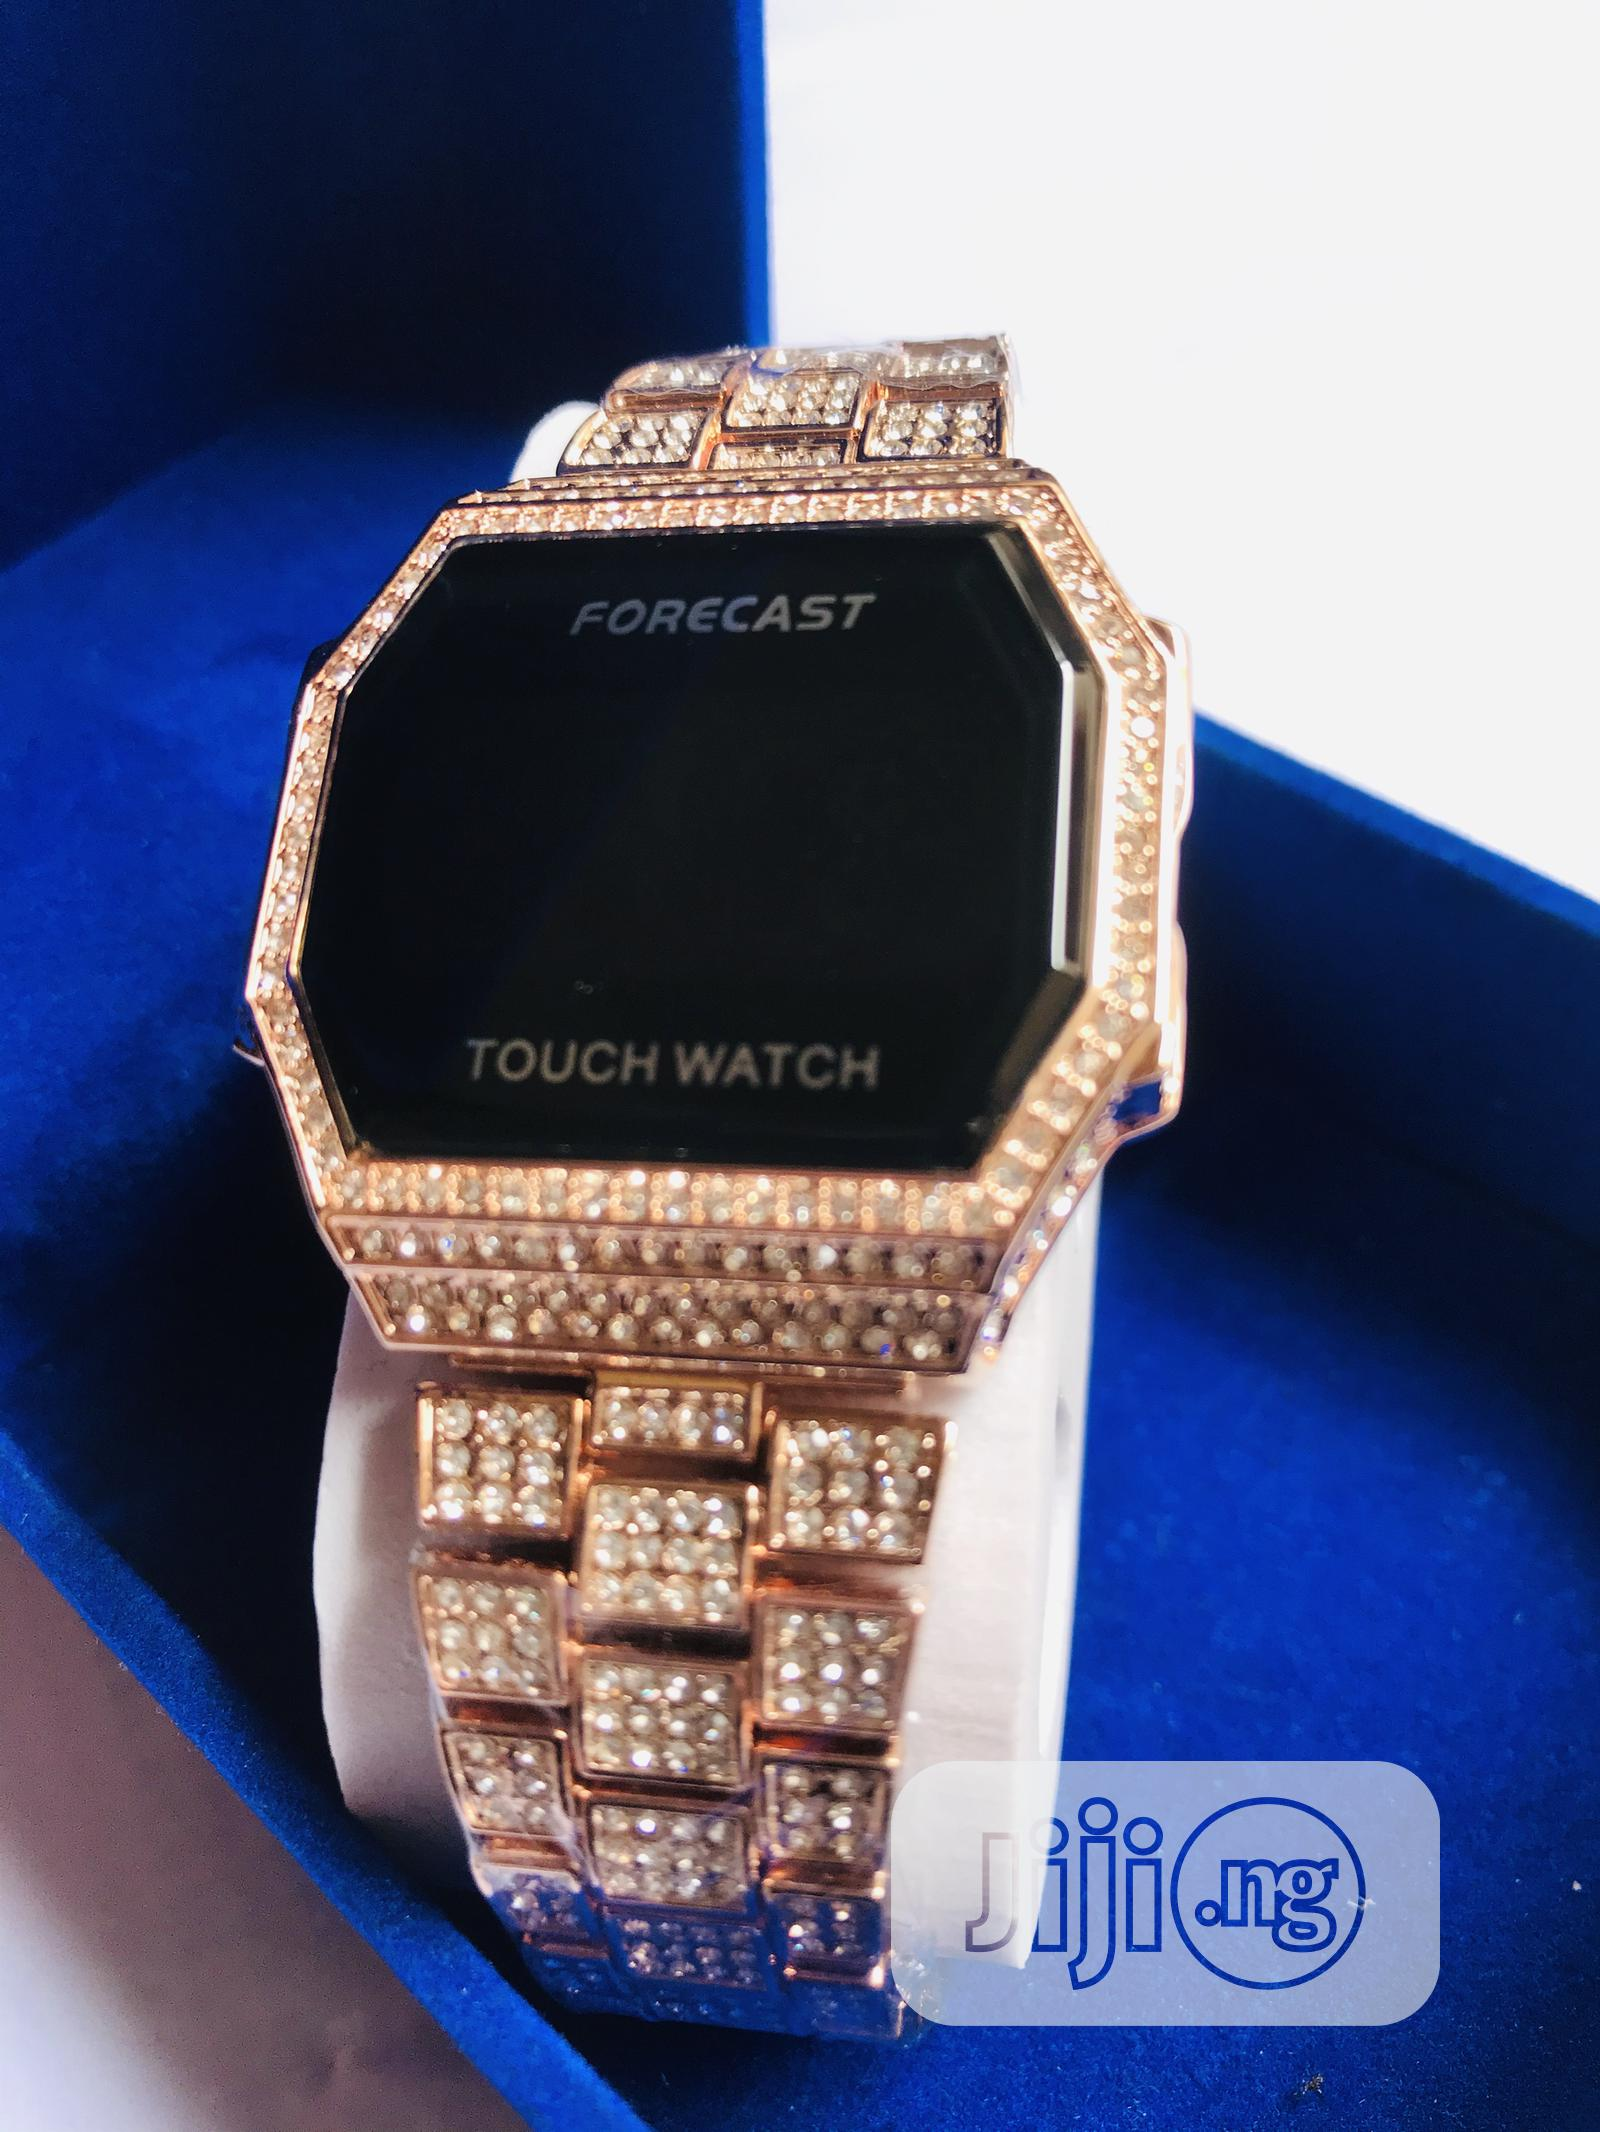 Forecast Watch, Touch Watch, Full Chain: 3 Years Guaranteed